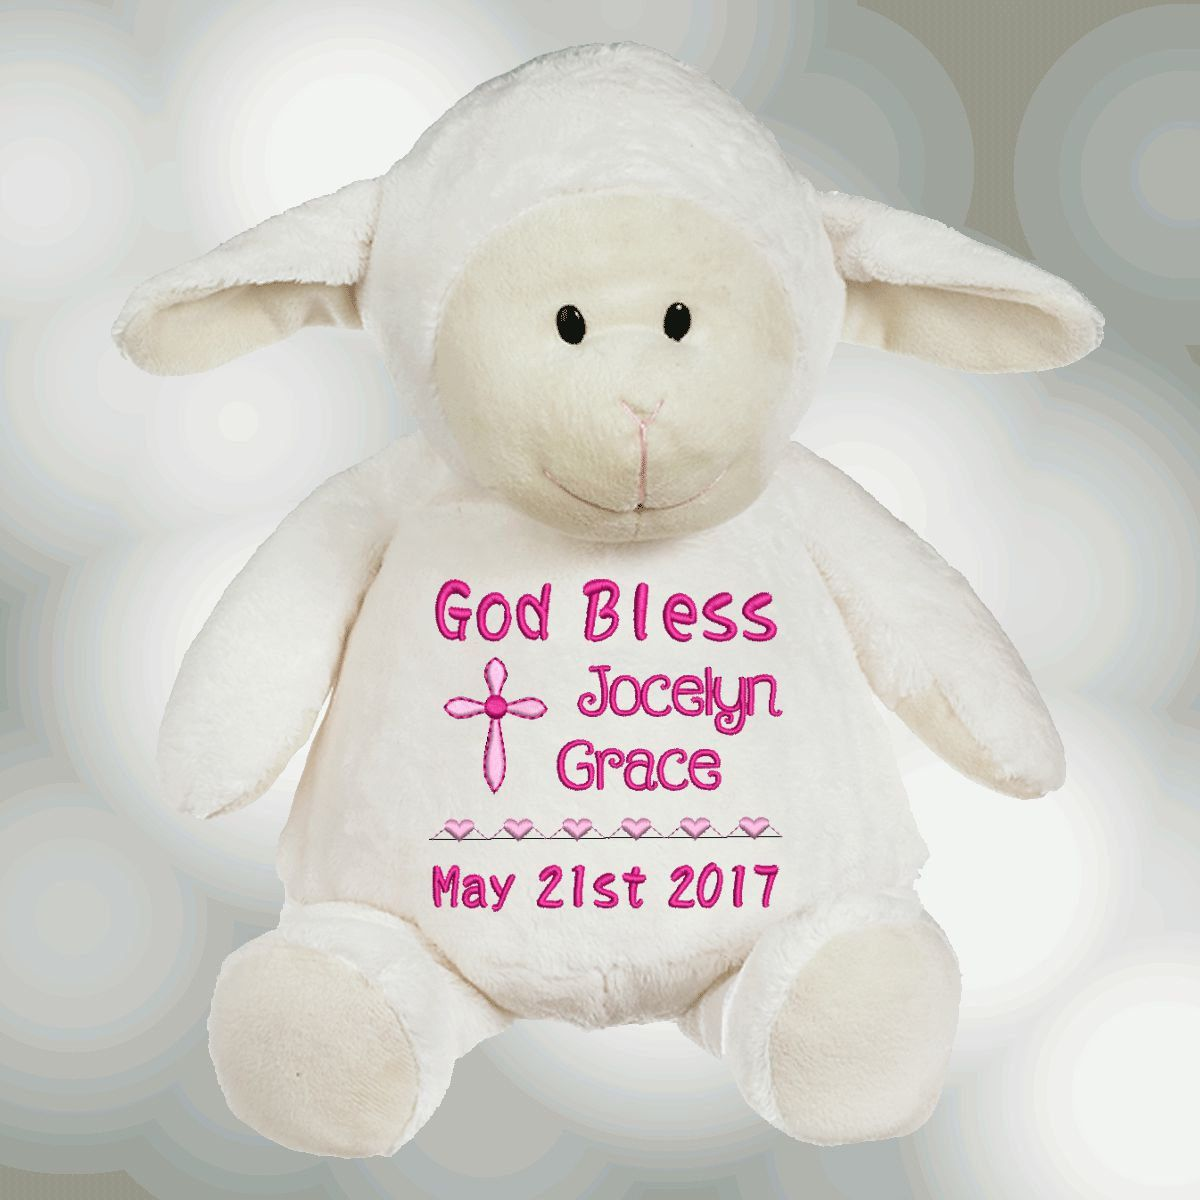 Personalized baby baptism gift embroidered soft plush baptismal personalized baby baptism gift embroidered soft plush baptismal lamb stuffed animal lamb by reneesembroidery negle Image collections